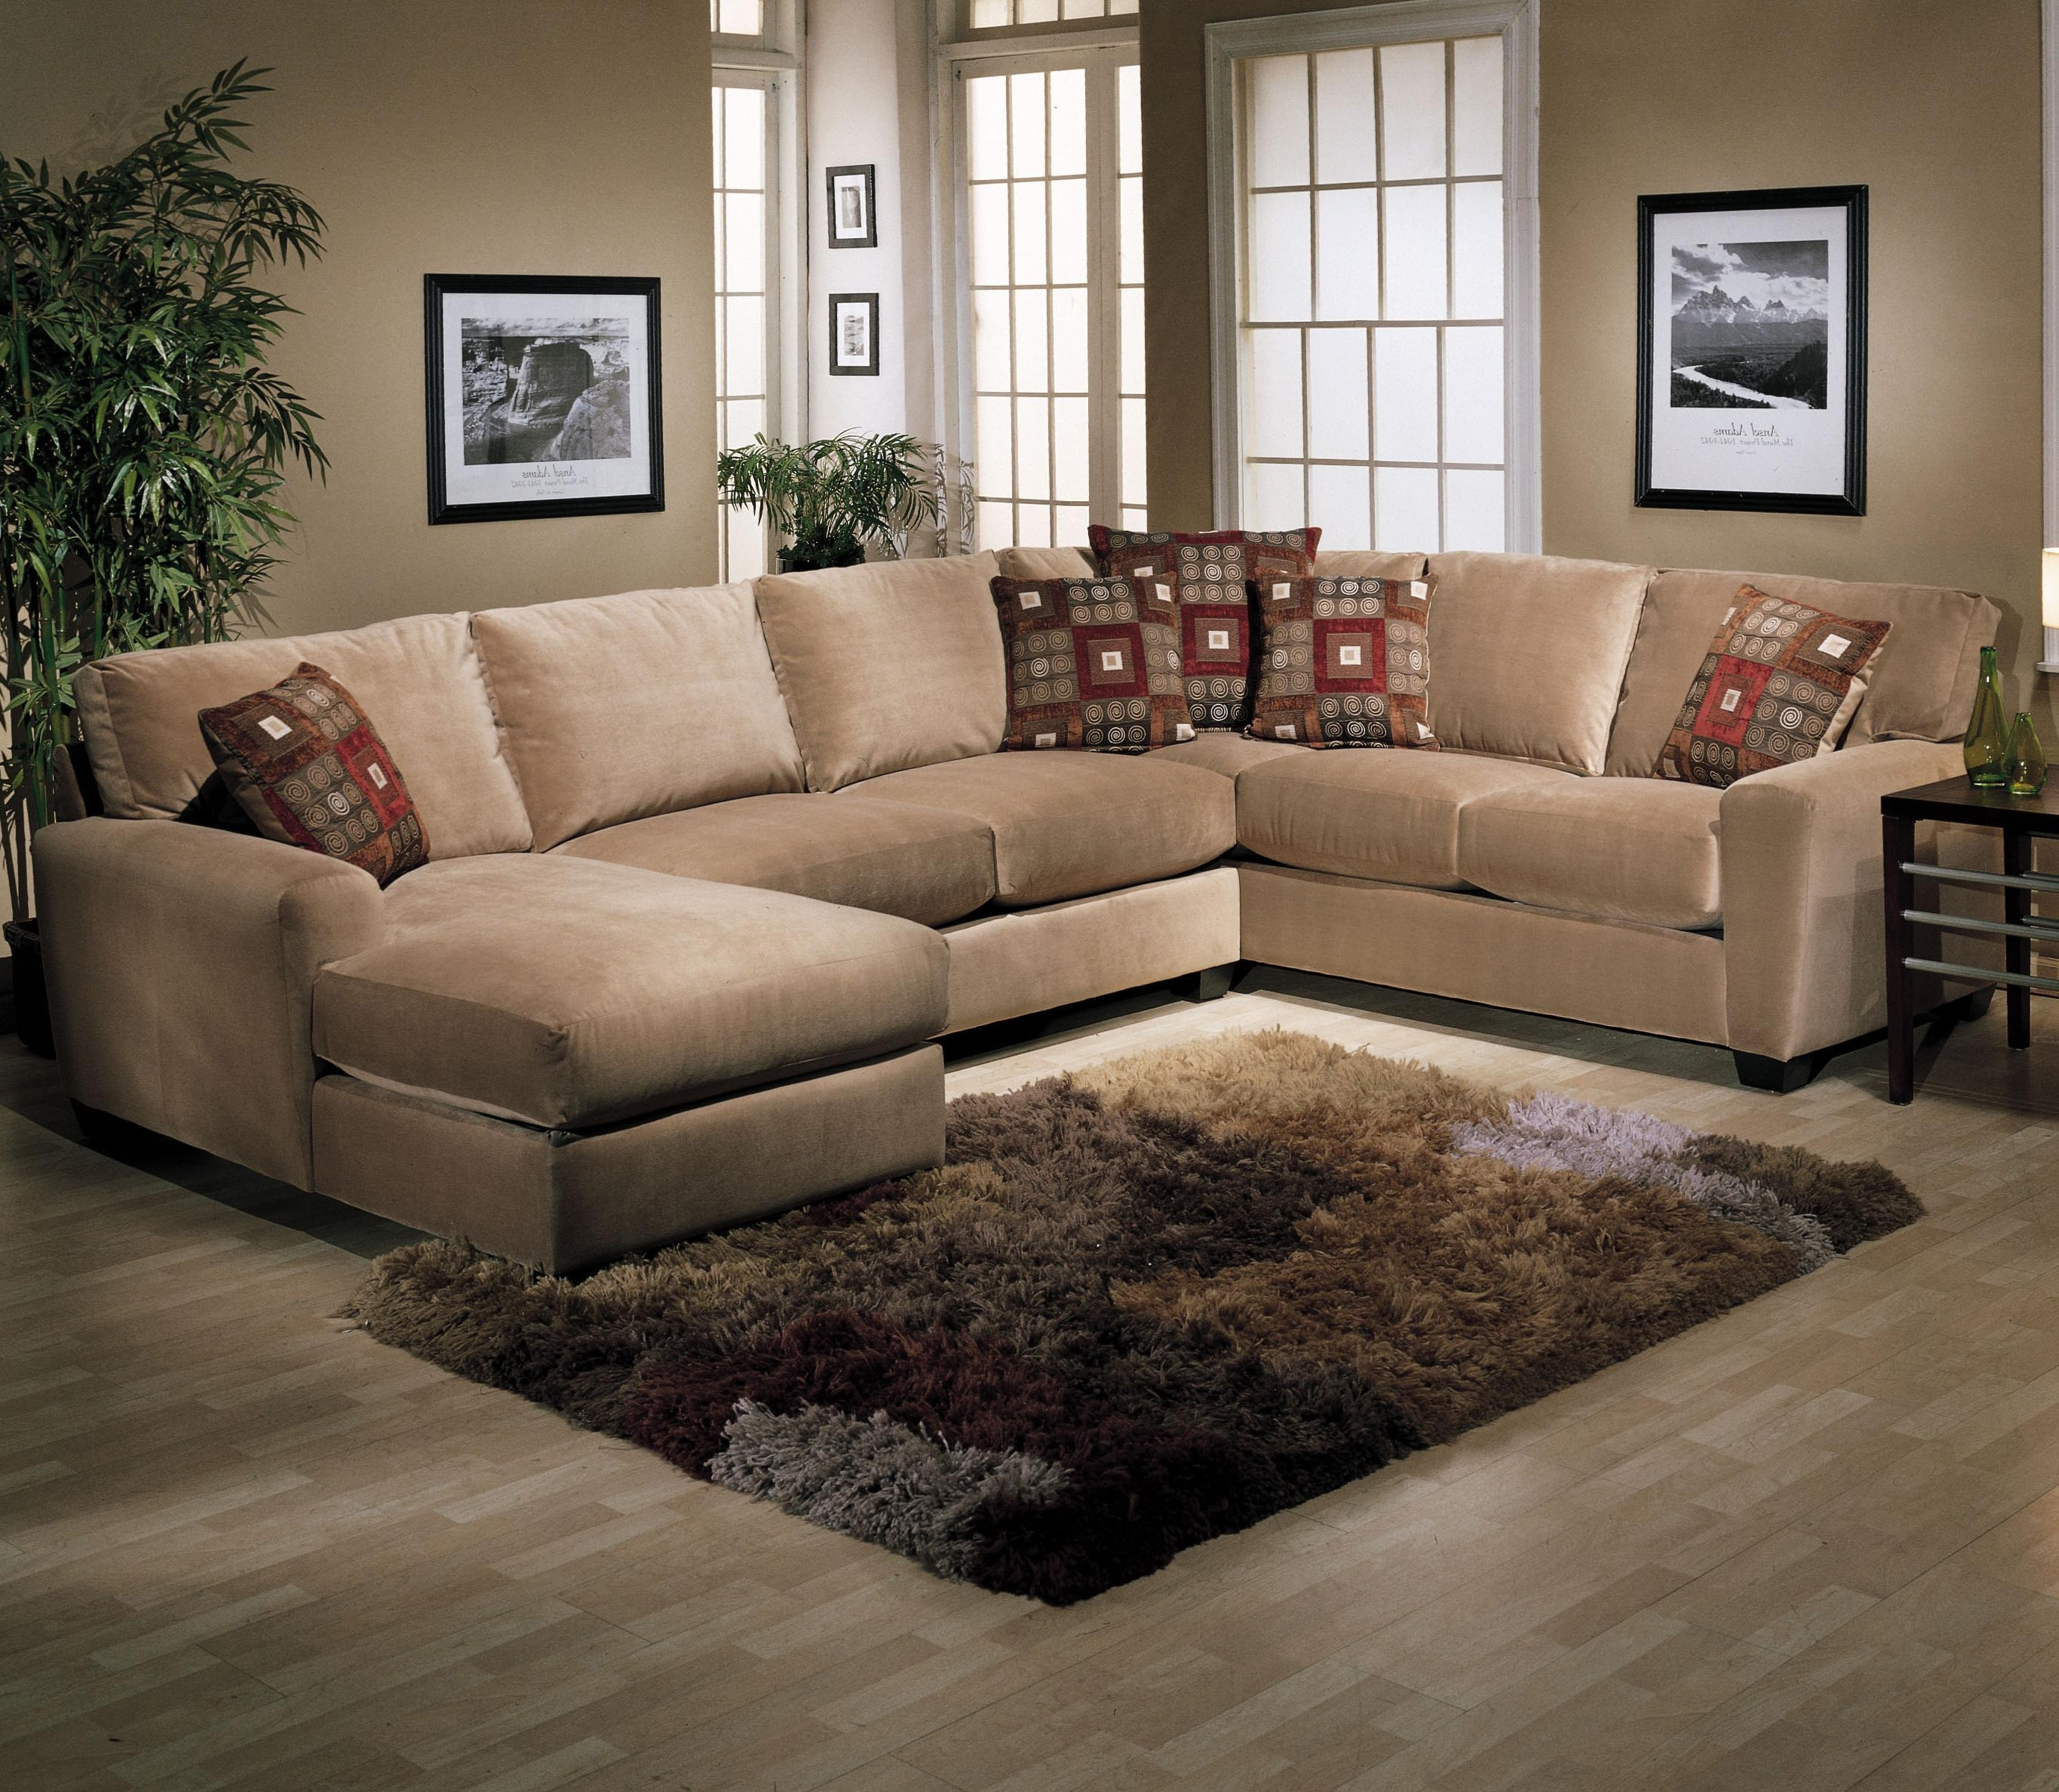 2018 L Shaped Sofa With Chaise Lounge – Home And Textiles Inside L Shaped Couches With Chaise (View 4 of 15)